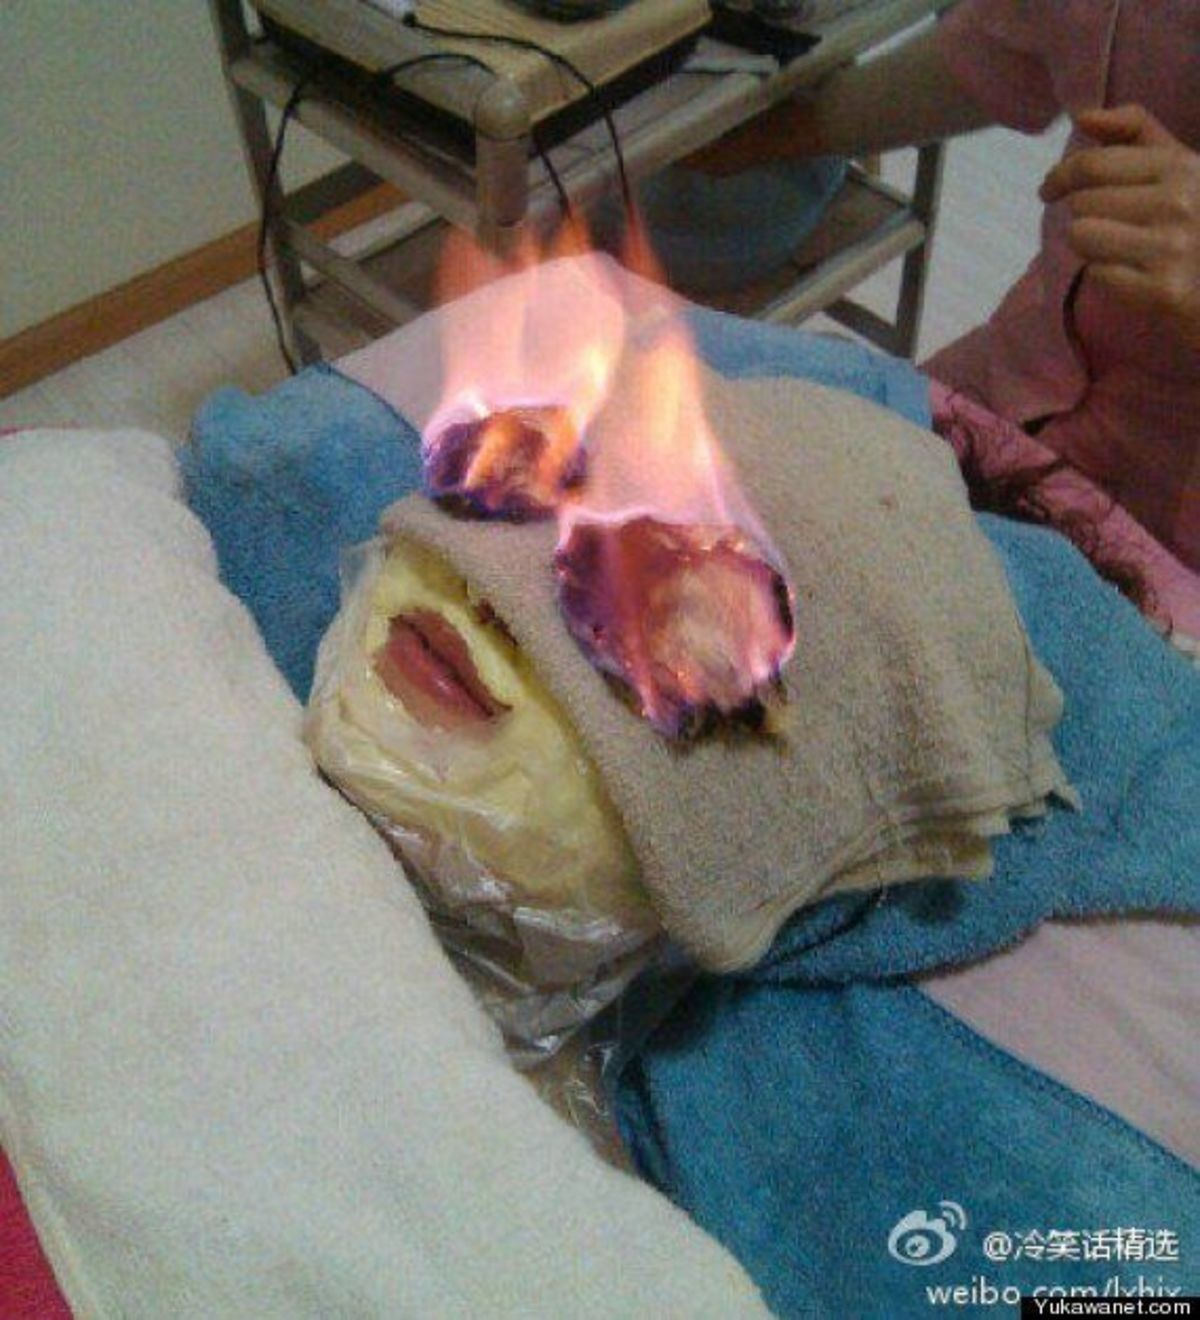 Fire Treatment Is A Type Of Traditional Chinese Medicine. .. 99% of Chinese medicine is utter